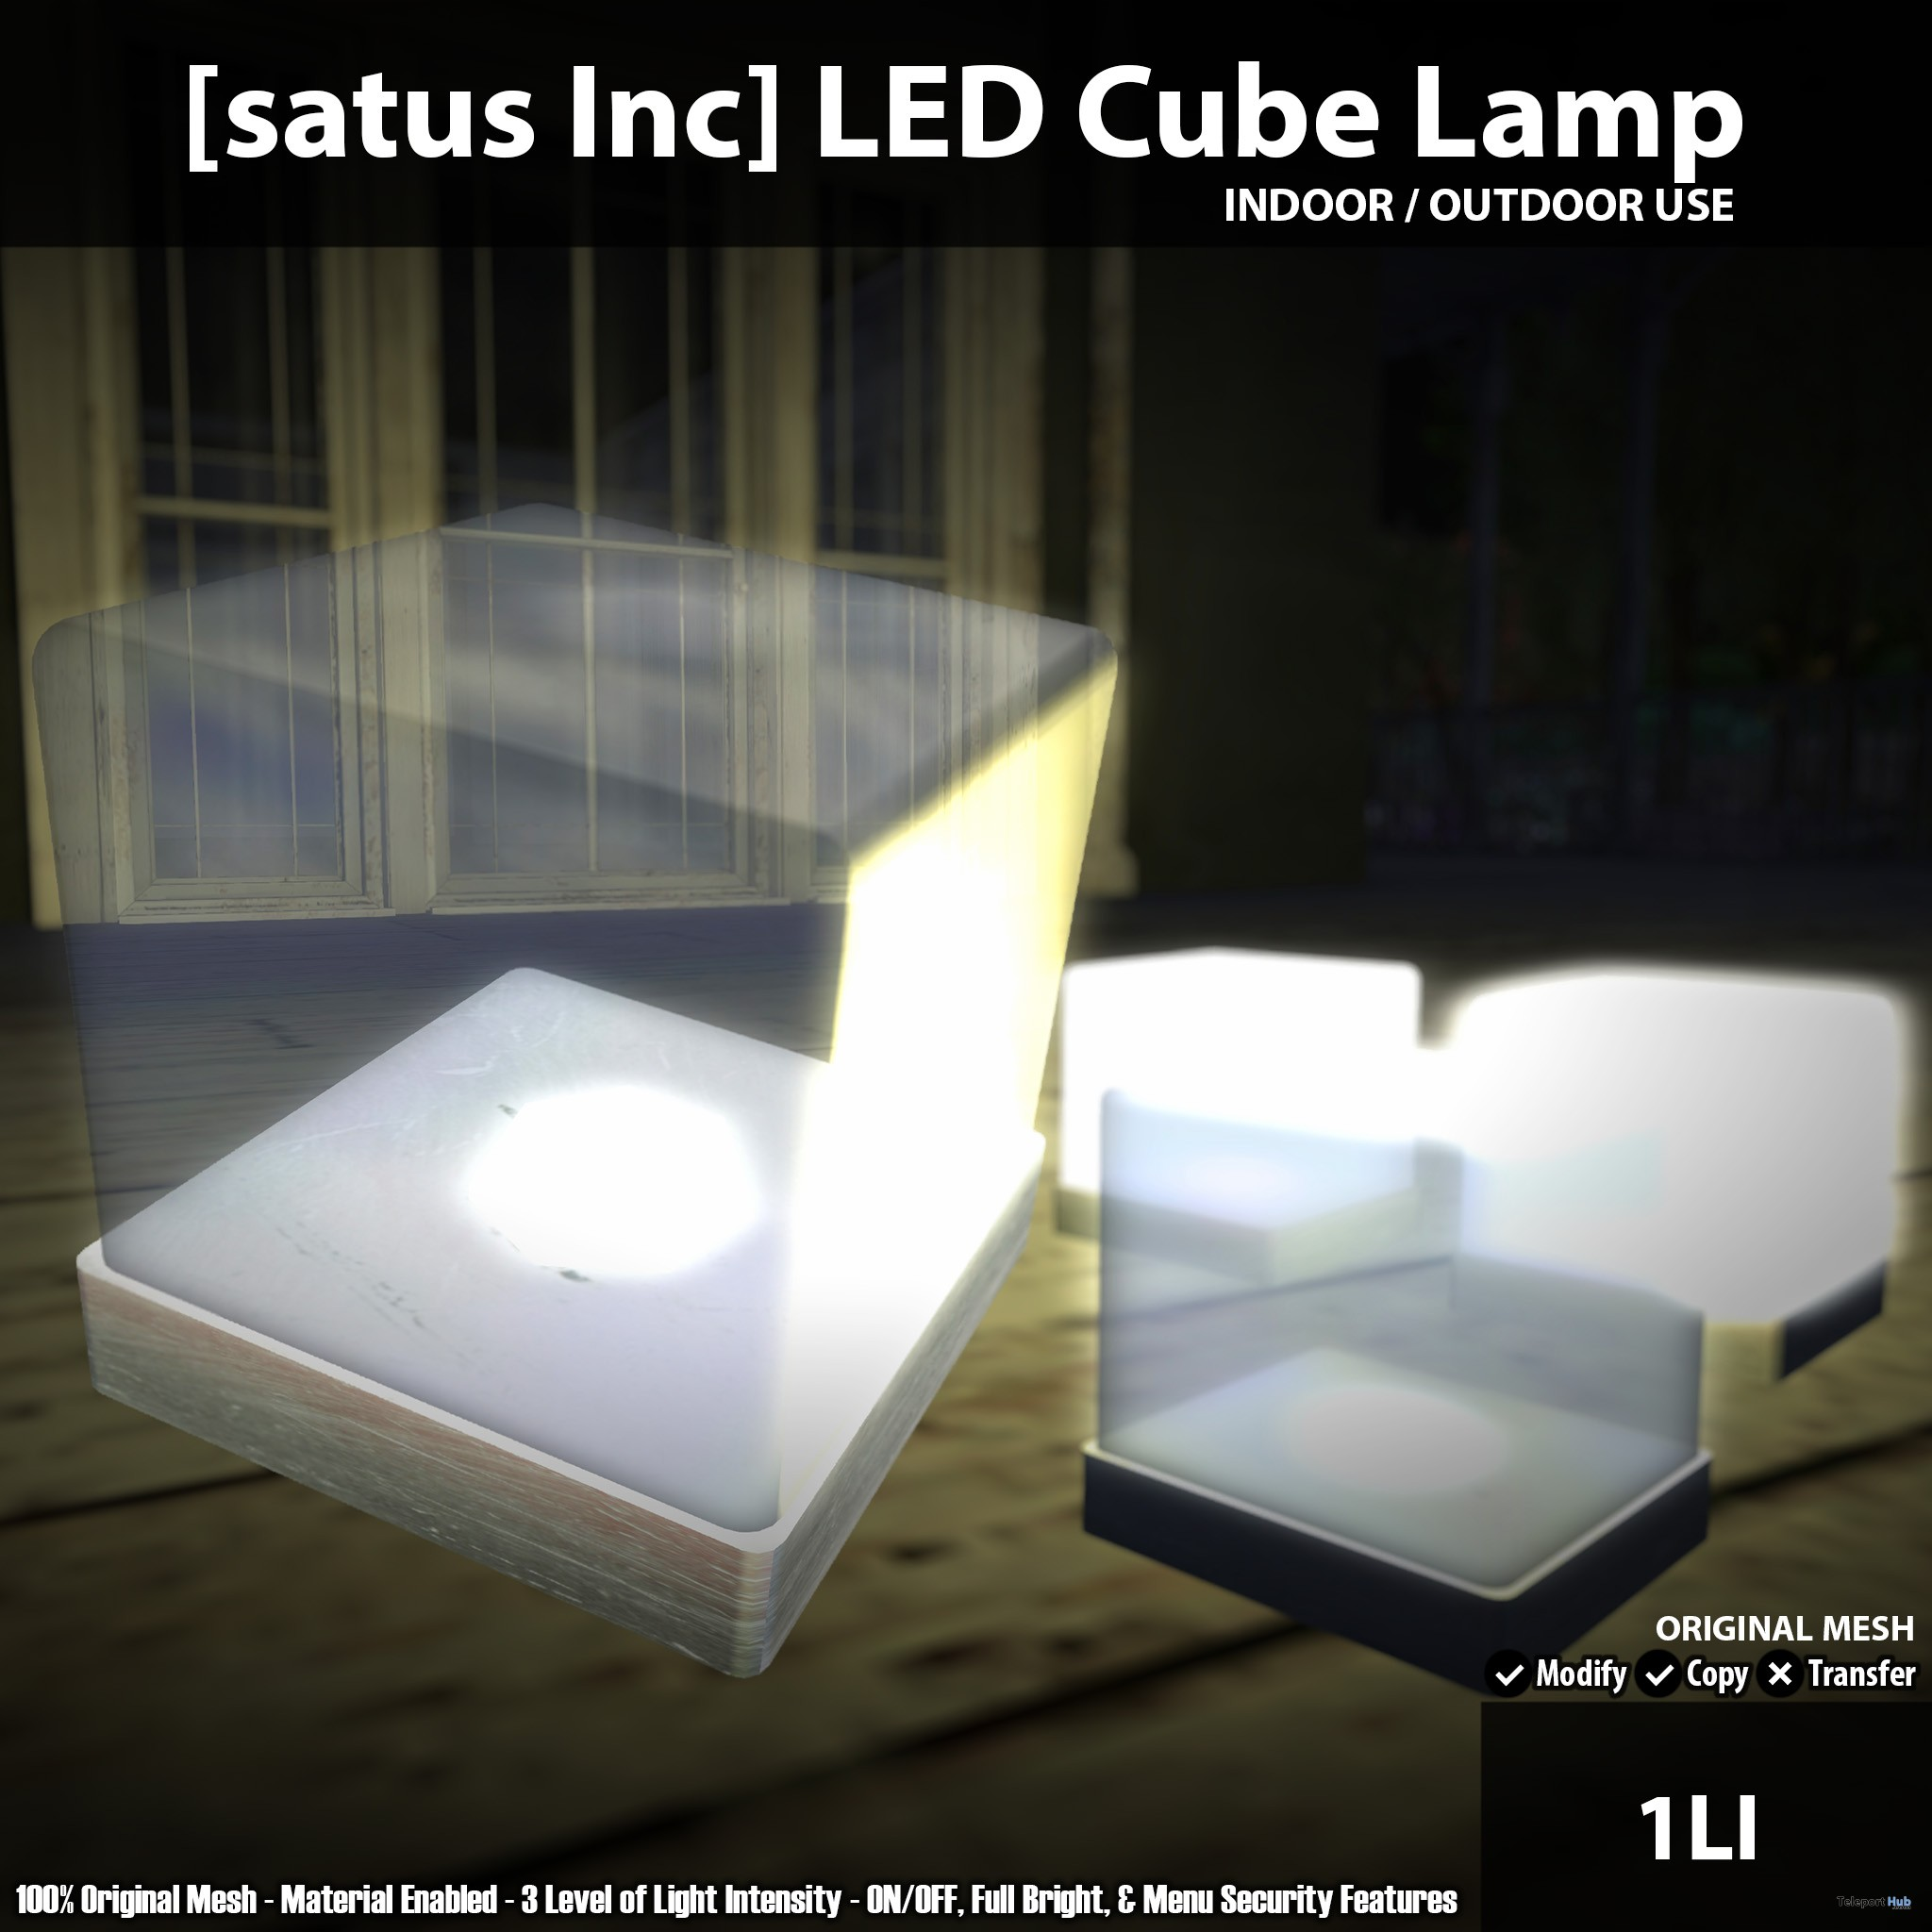 New Release: LED Cube Lamp by [satus Inc] - Teleport Hub - teleporthub.com